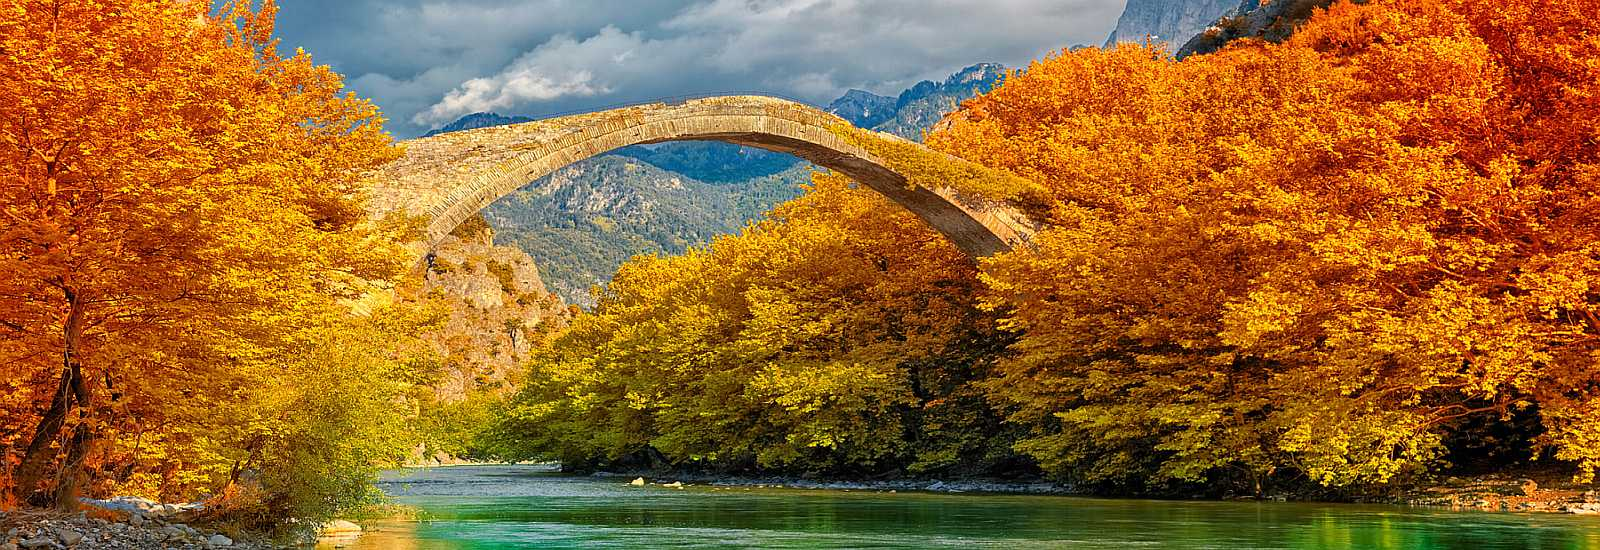 Bridge over Aoos river<span>Konitsa, Greece</span>